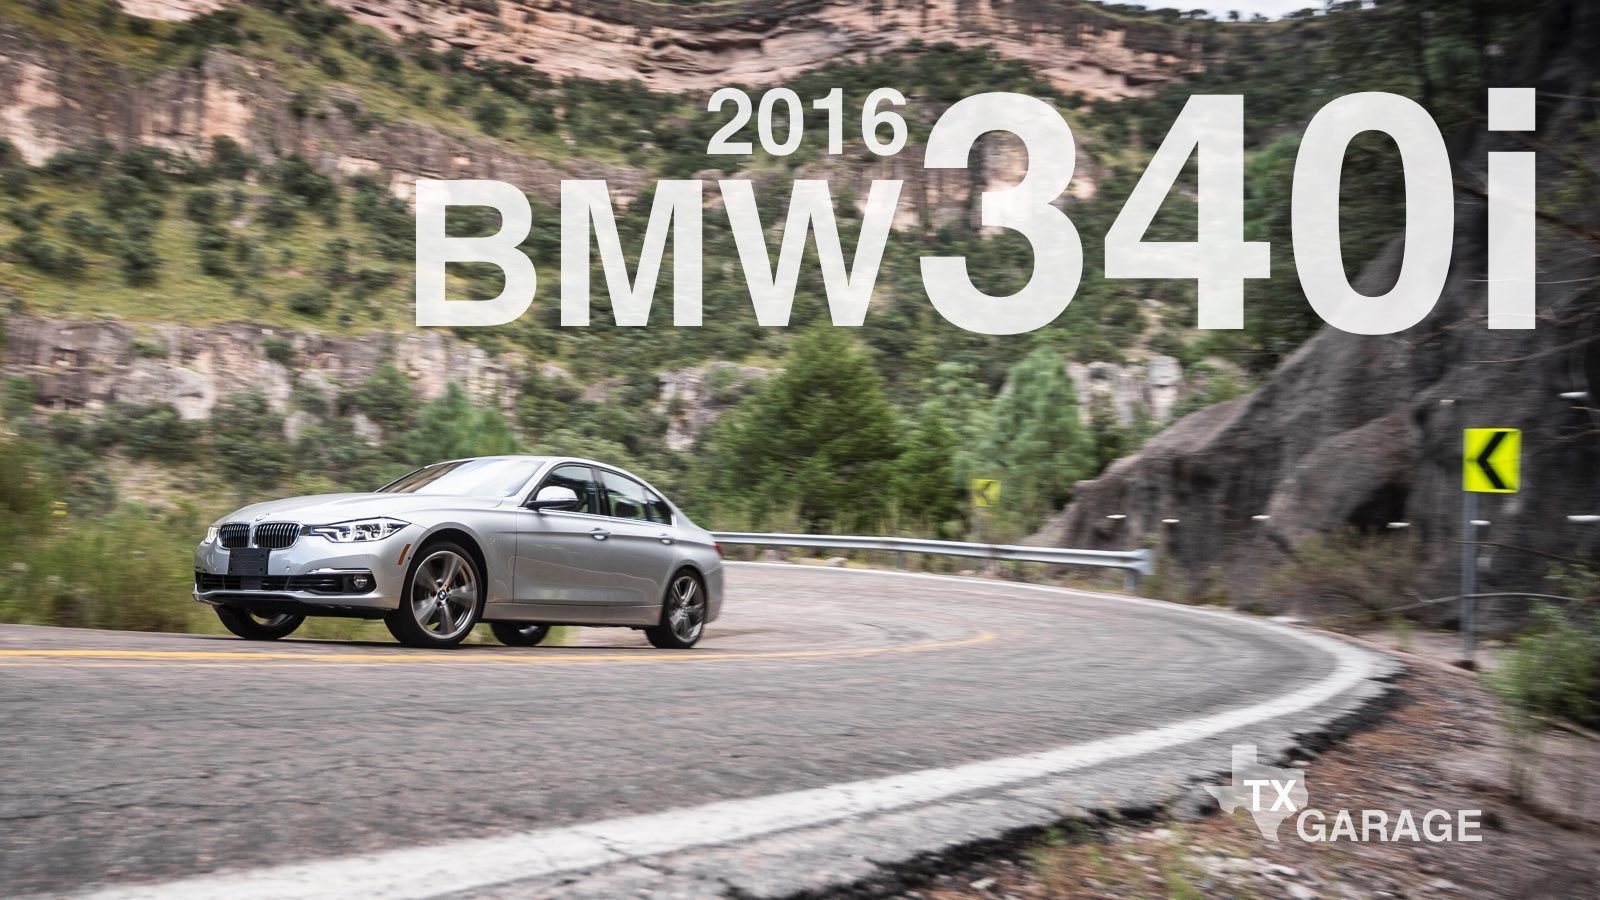 The 2016 BMW 340i - 4-Door Sedan